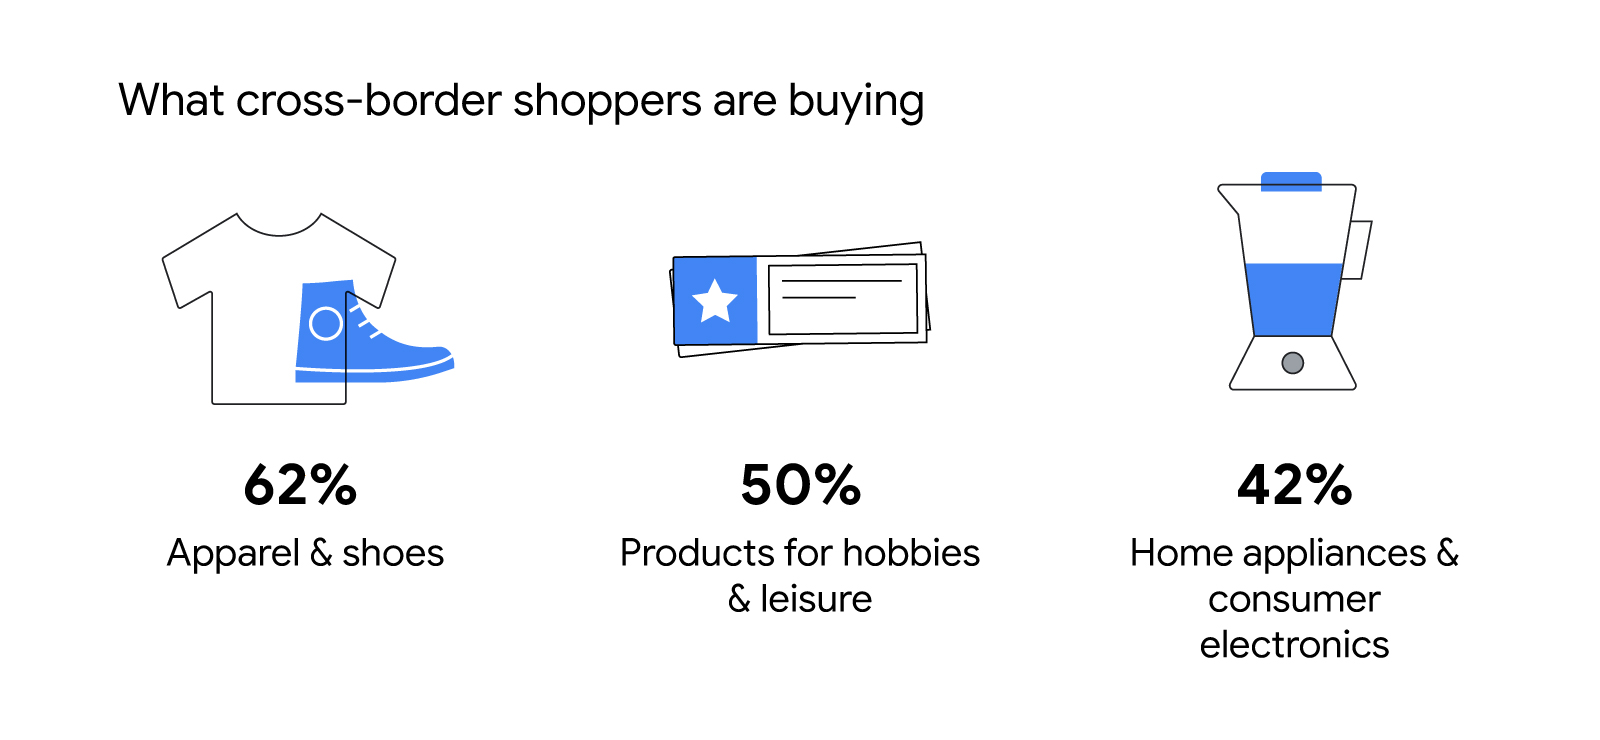 What cross-border shoppers are buying